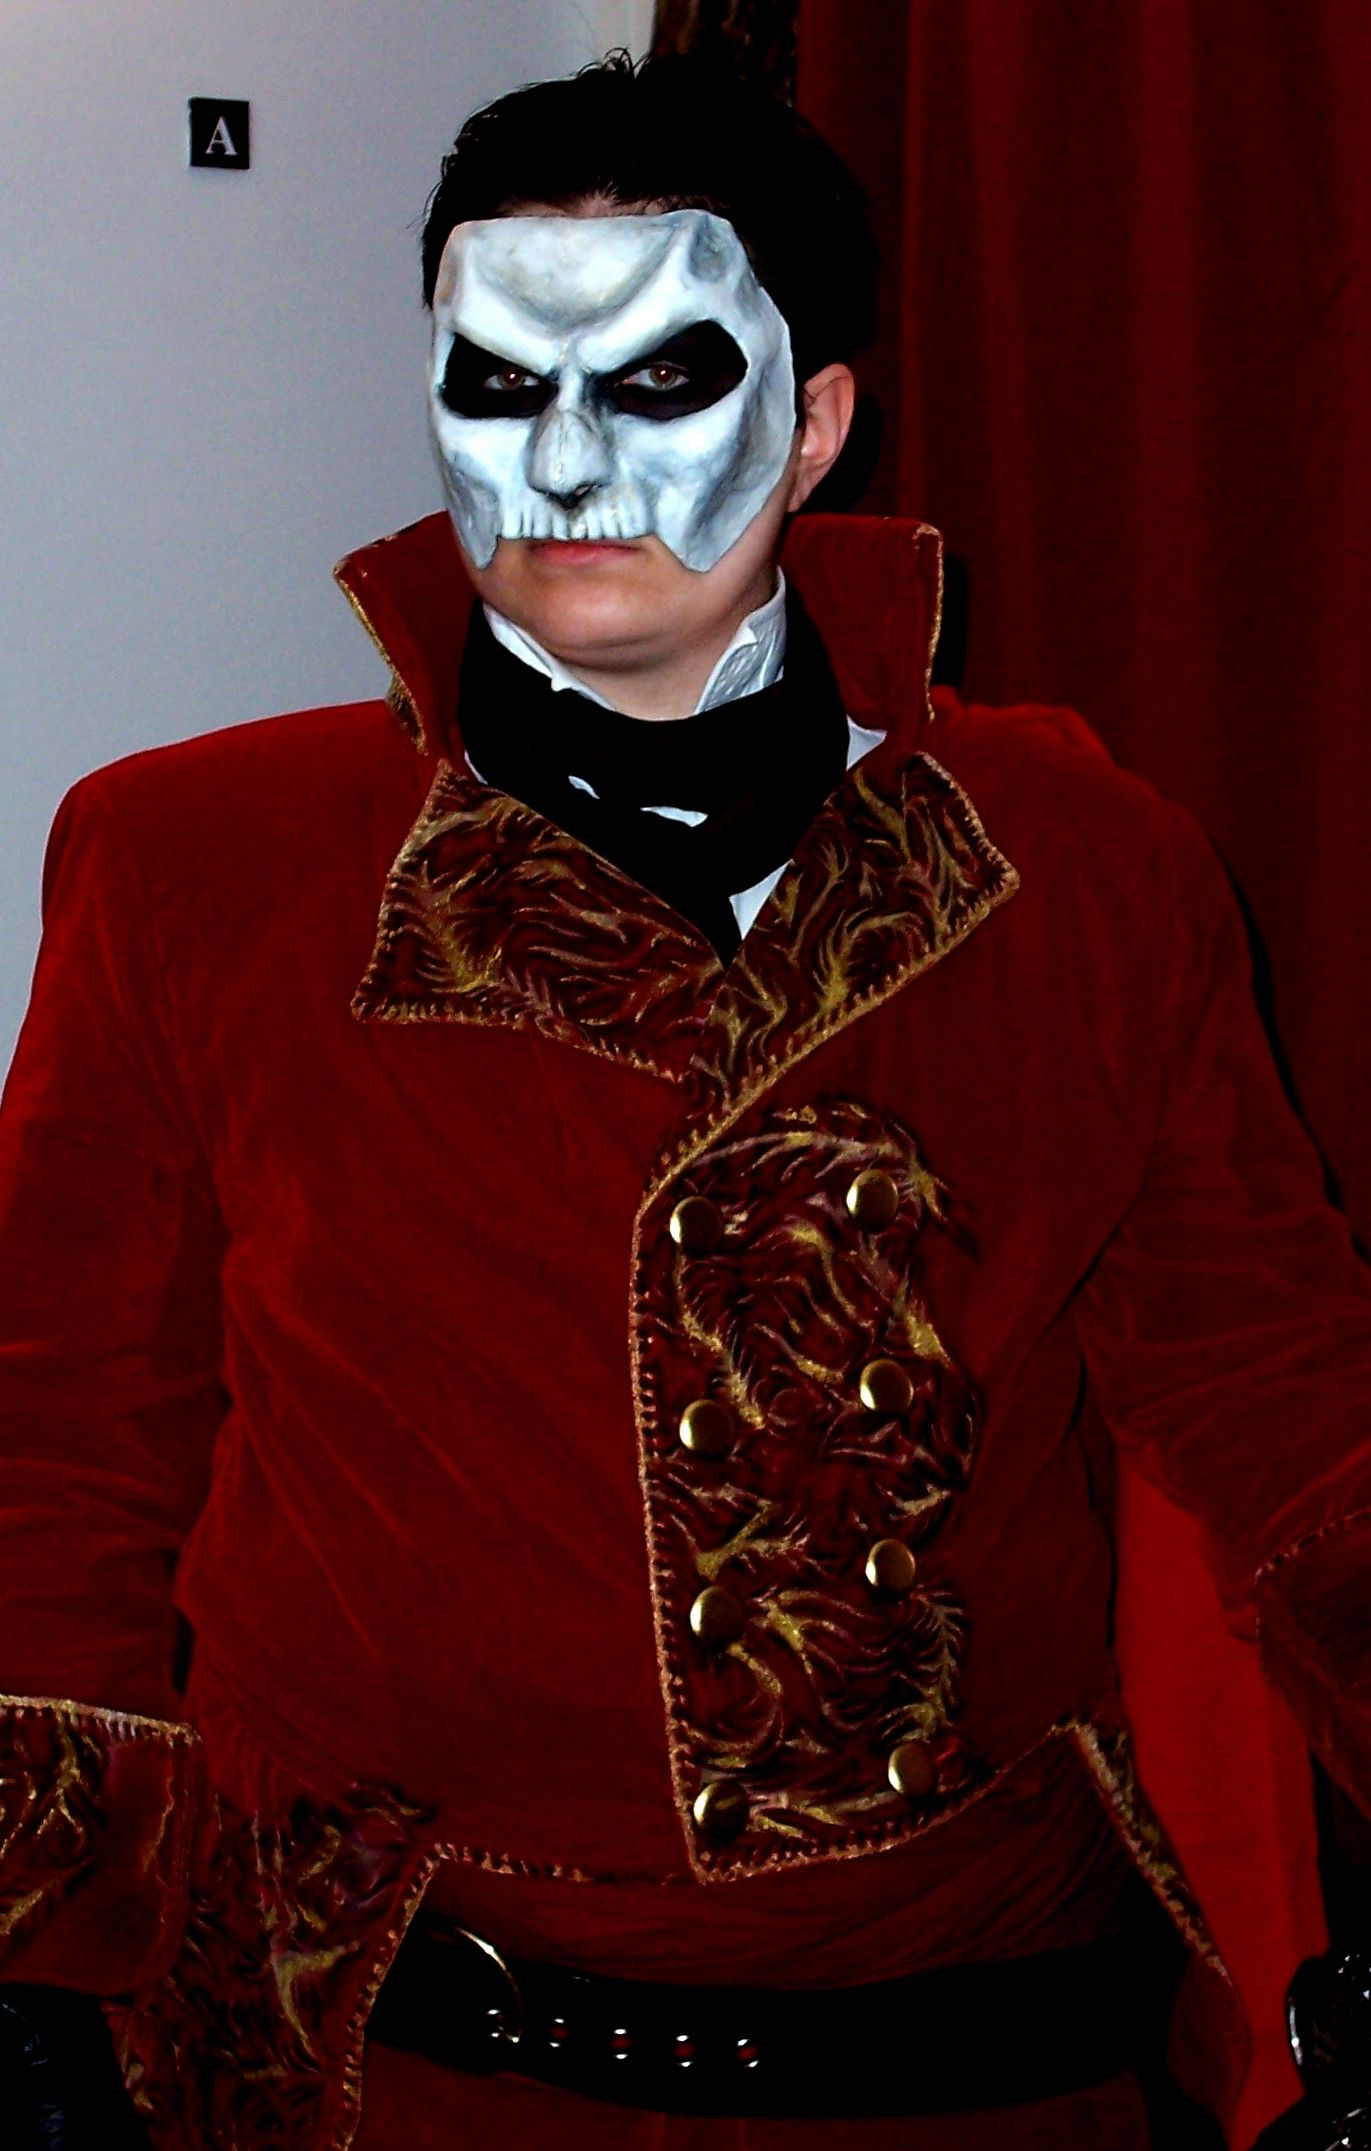 another wow costume the masque of the red death poto masque of the red death costume masqueradereddeath com